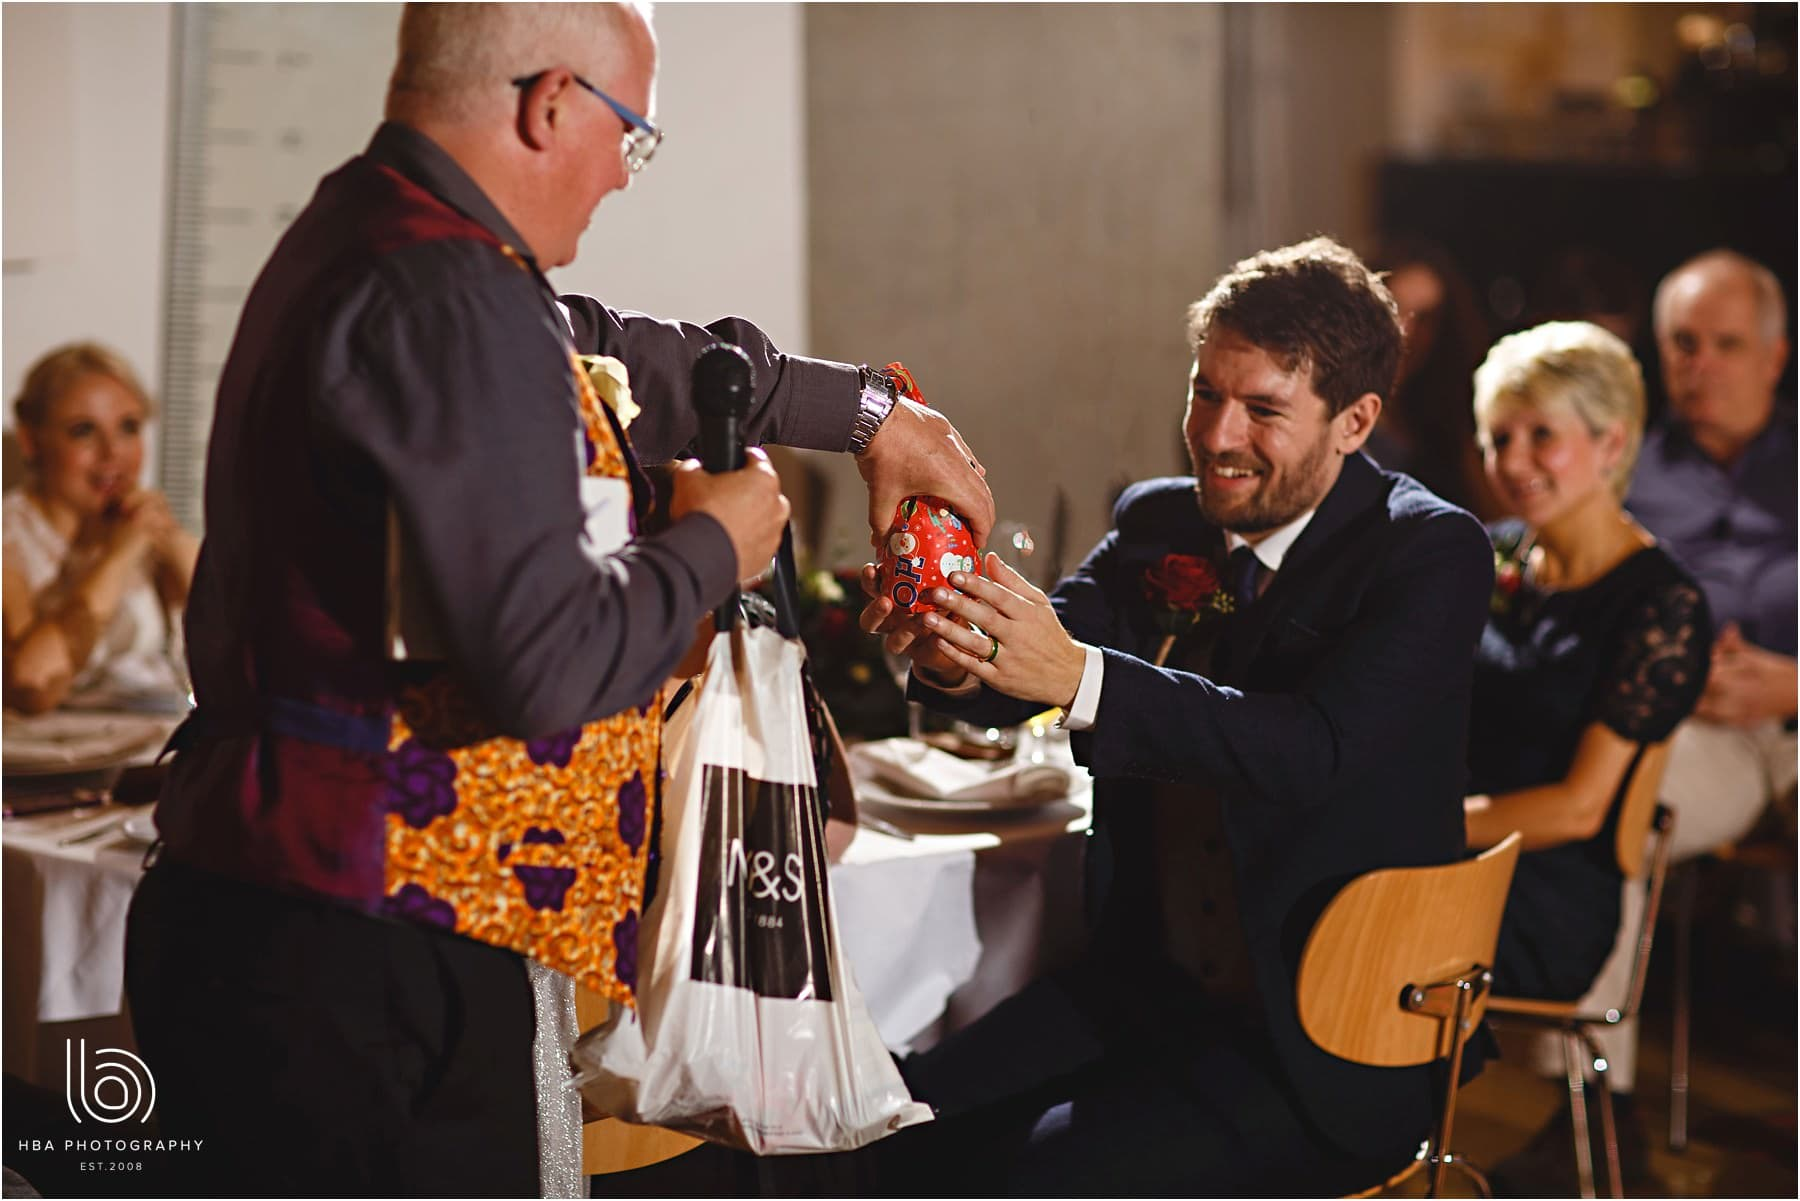 Gifts during the wedding speeches